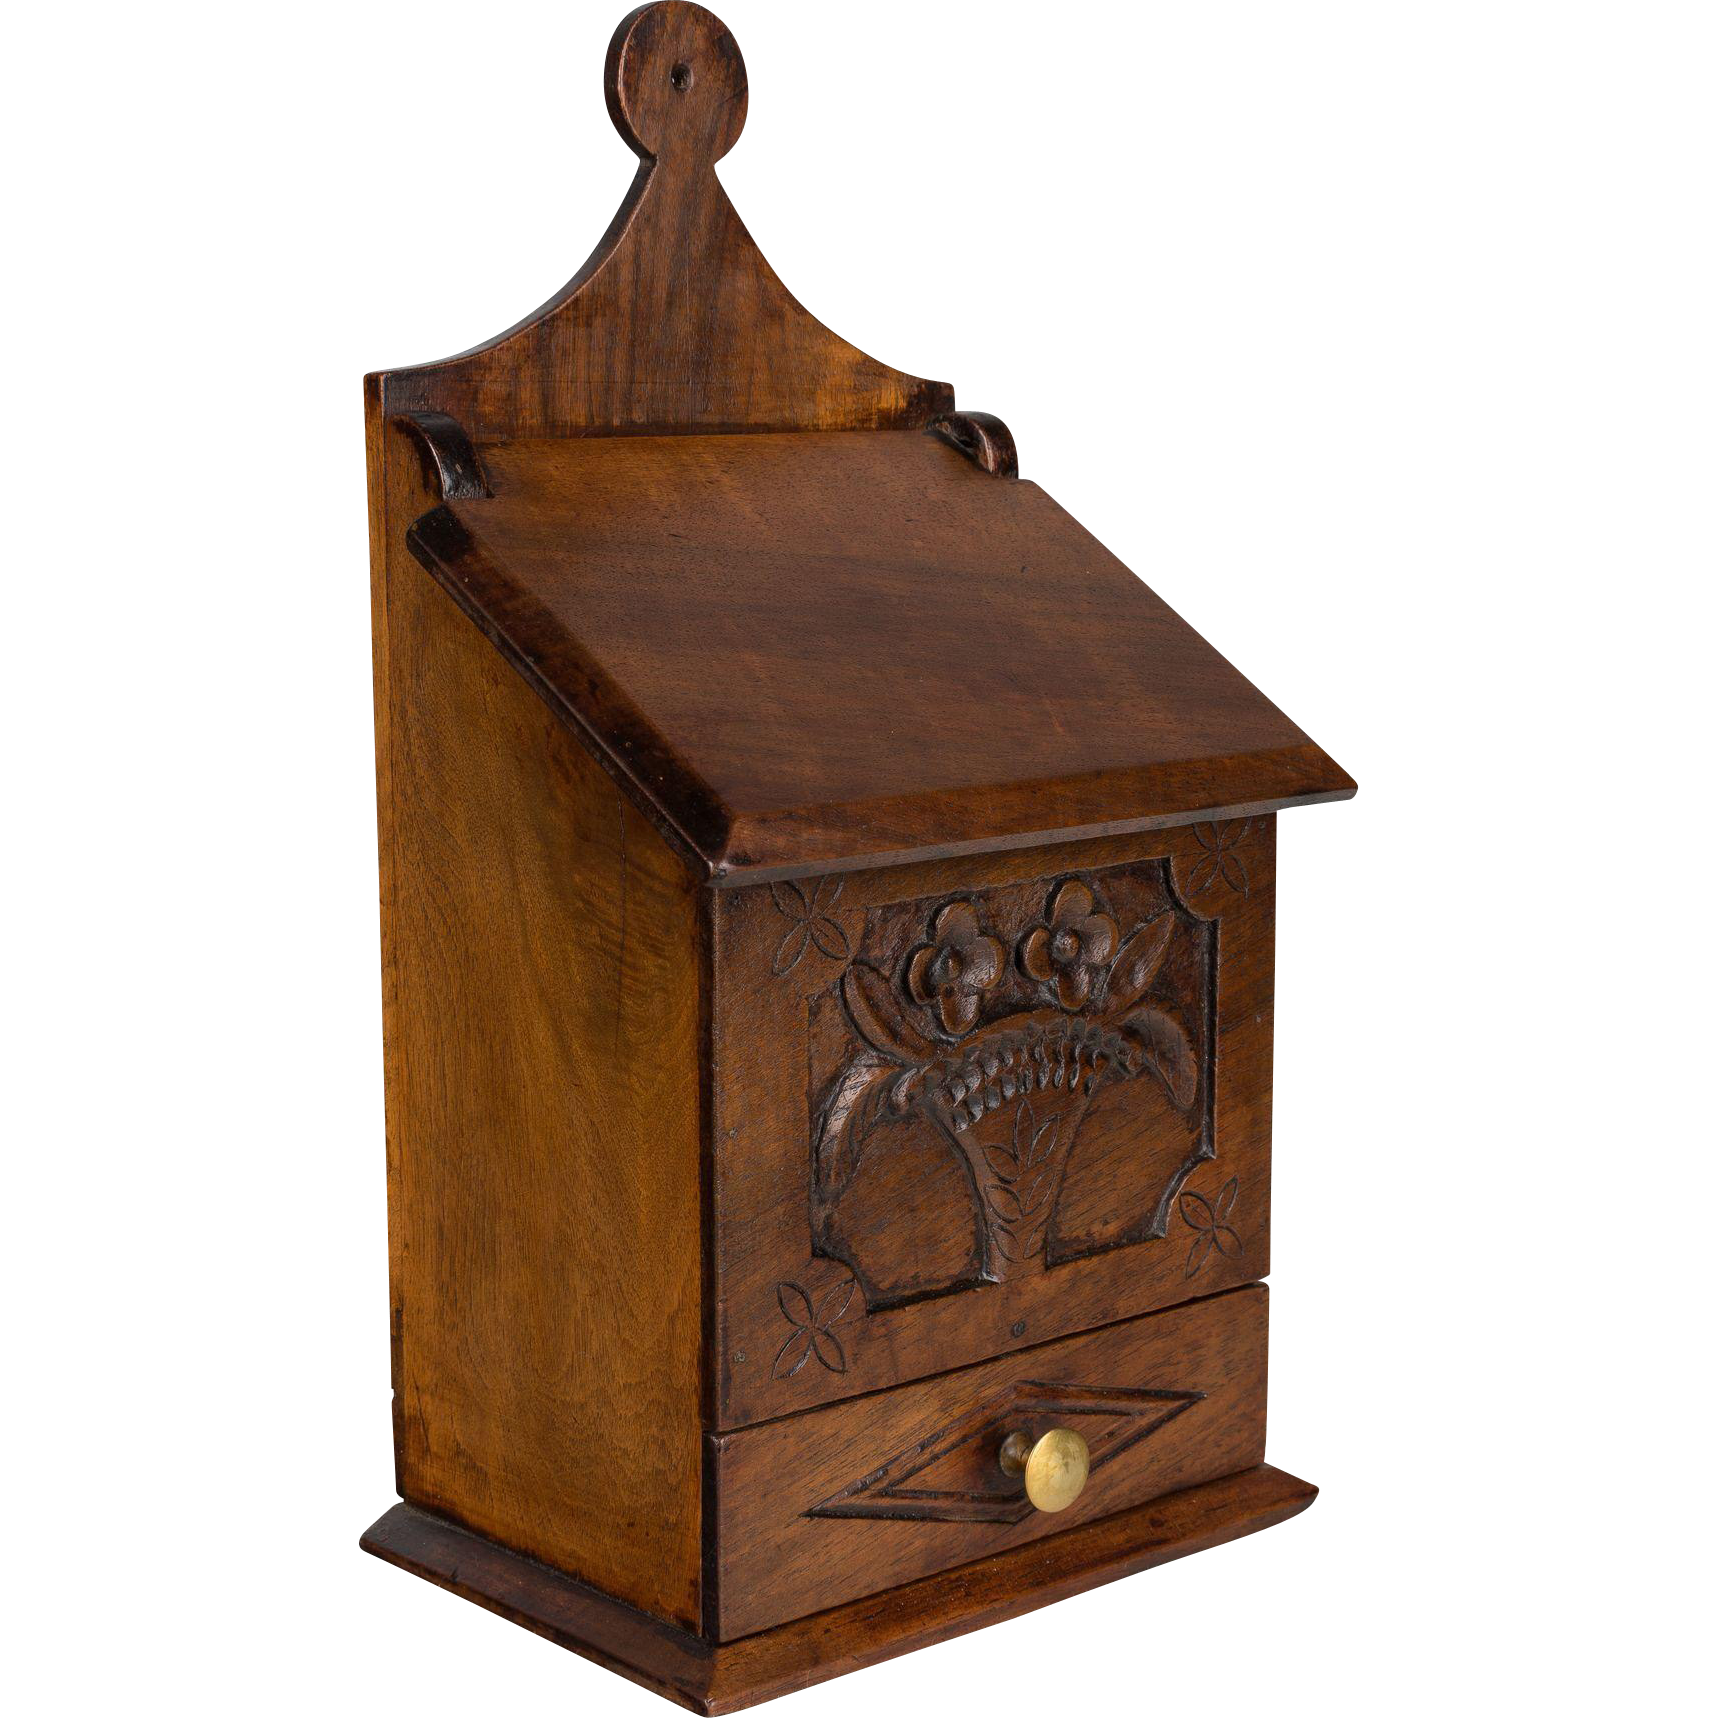 French 19th Century Salt Box